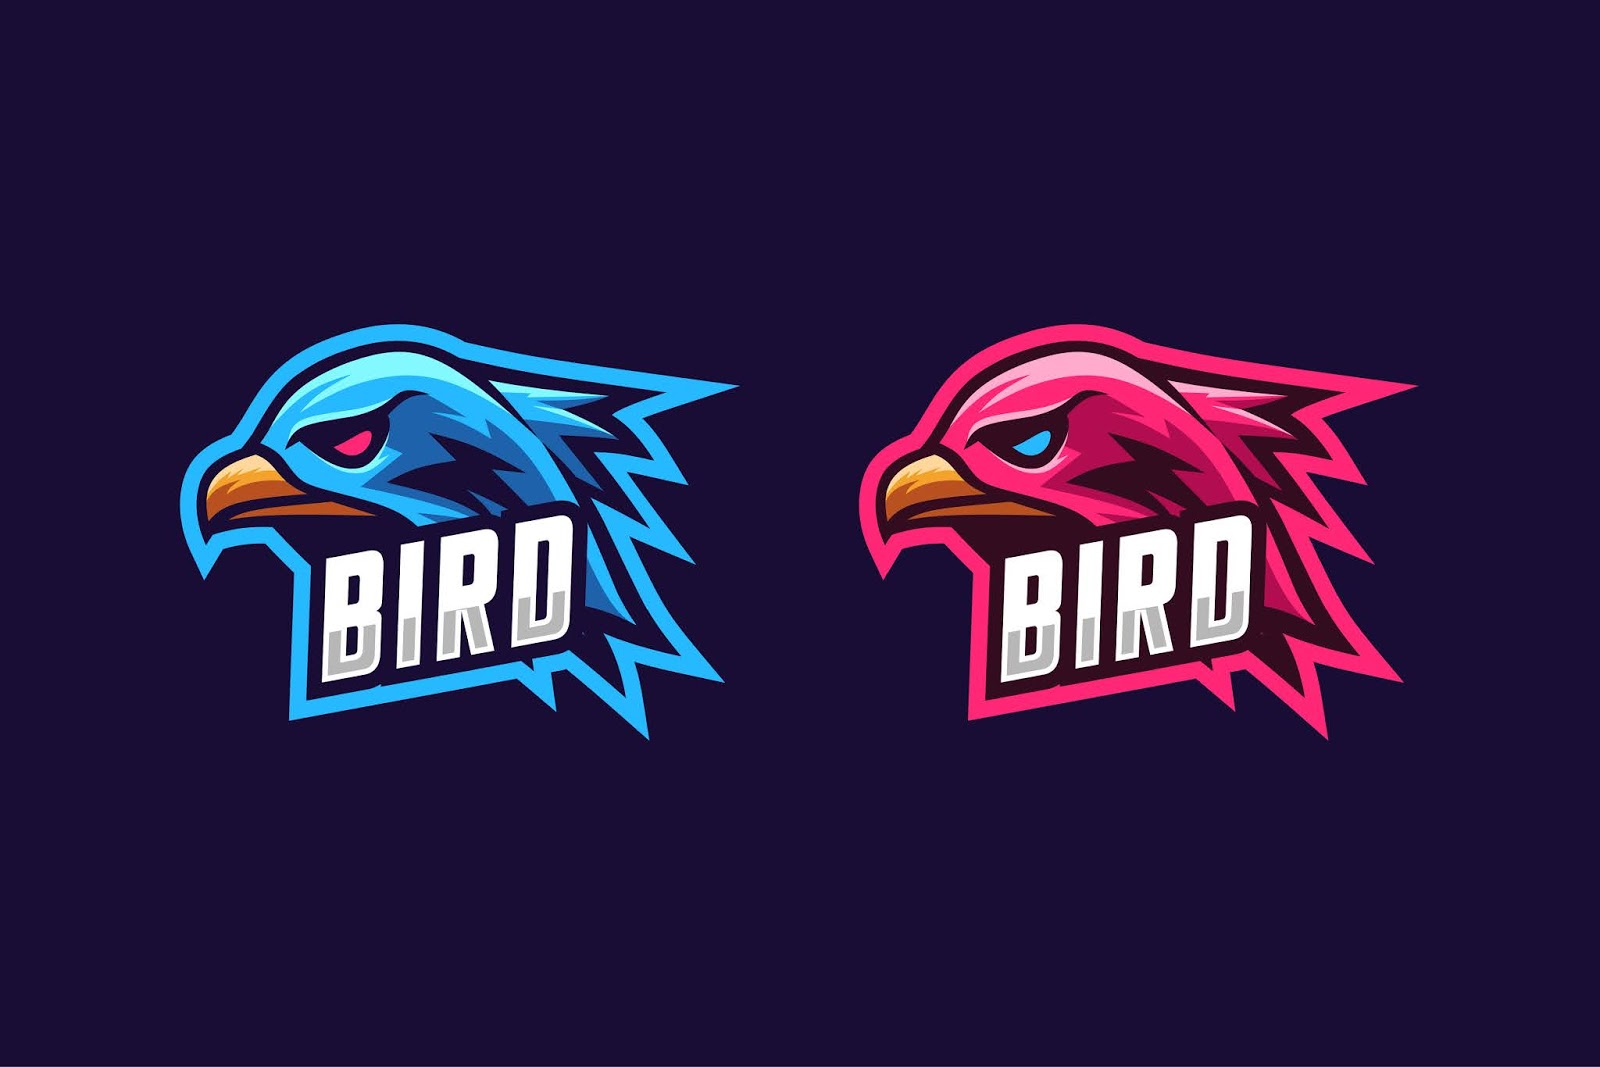 Simple Bird Esport Logo Free Download Vector CDR, AI, EPS and PNG Formats